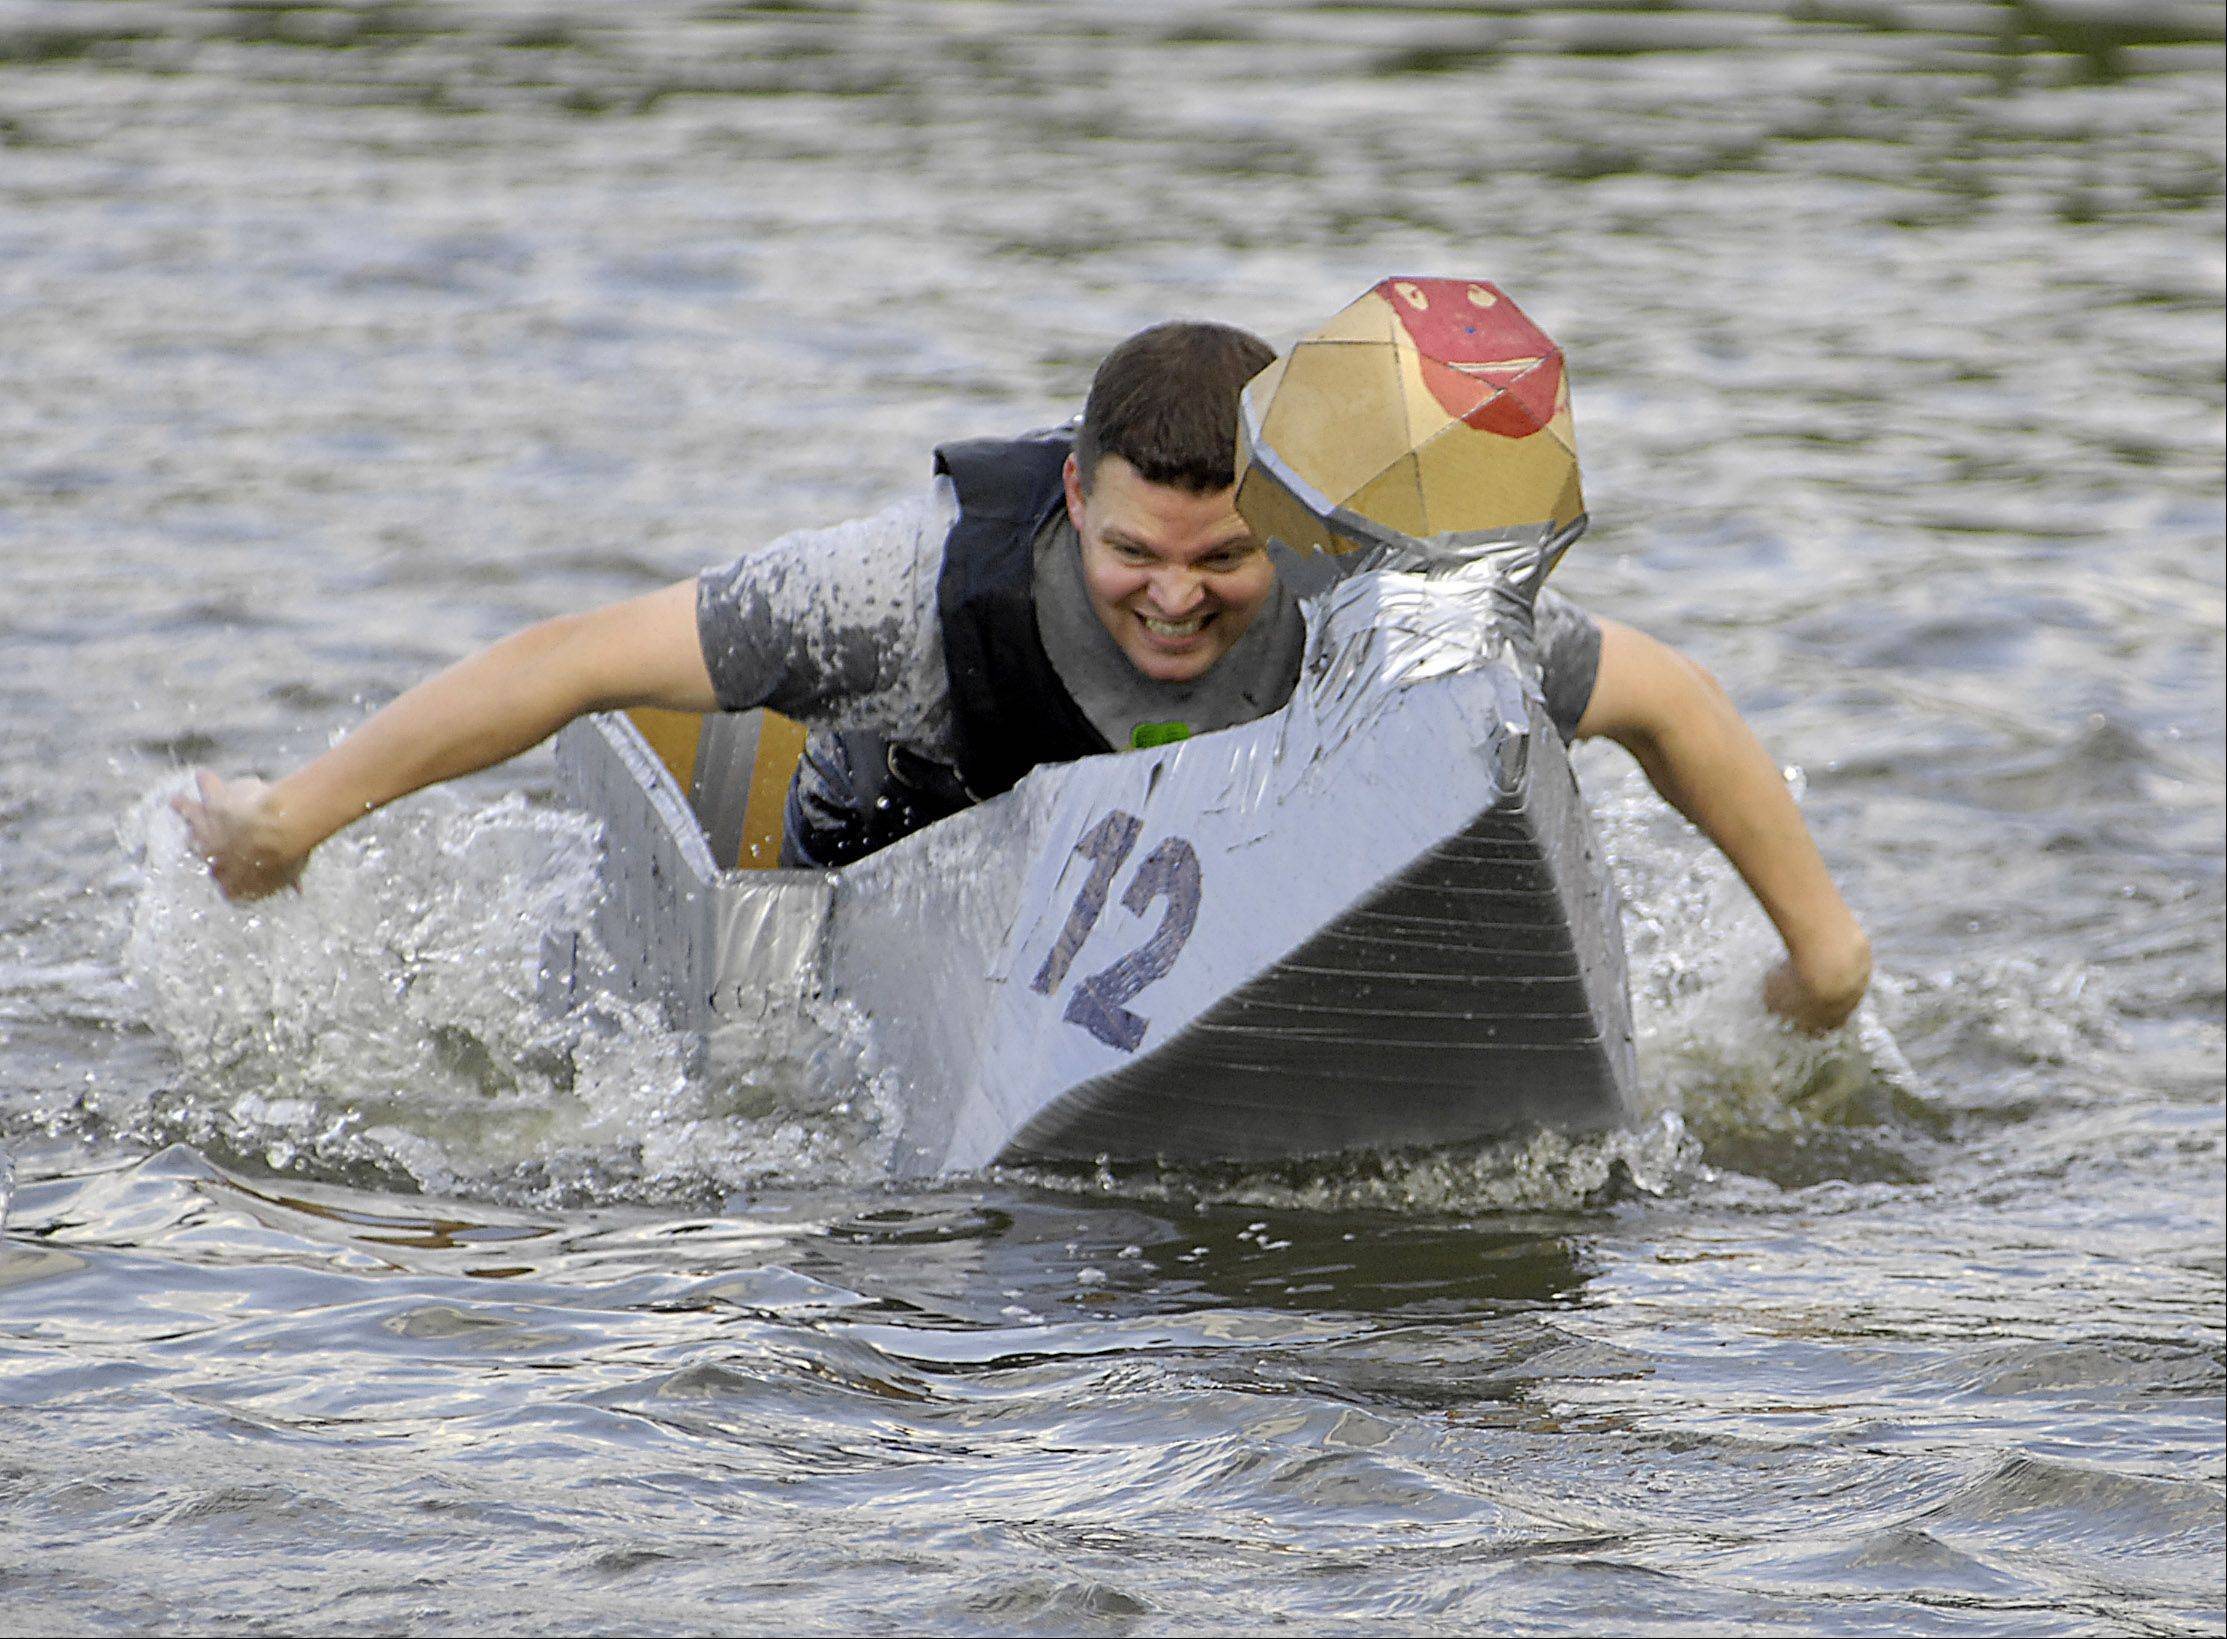 Joe Schneider, 32, of Algonquin, powers his cardboard boat through the choppy waters of the Fox River for a third-place finish at the annual cardboard boat regatta at a previous Algonquin Founders' Days festival. All 110 competitors were given their supplies and had less than two hours to design and build their boat on the shore of the Fox River.